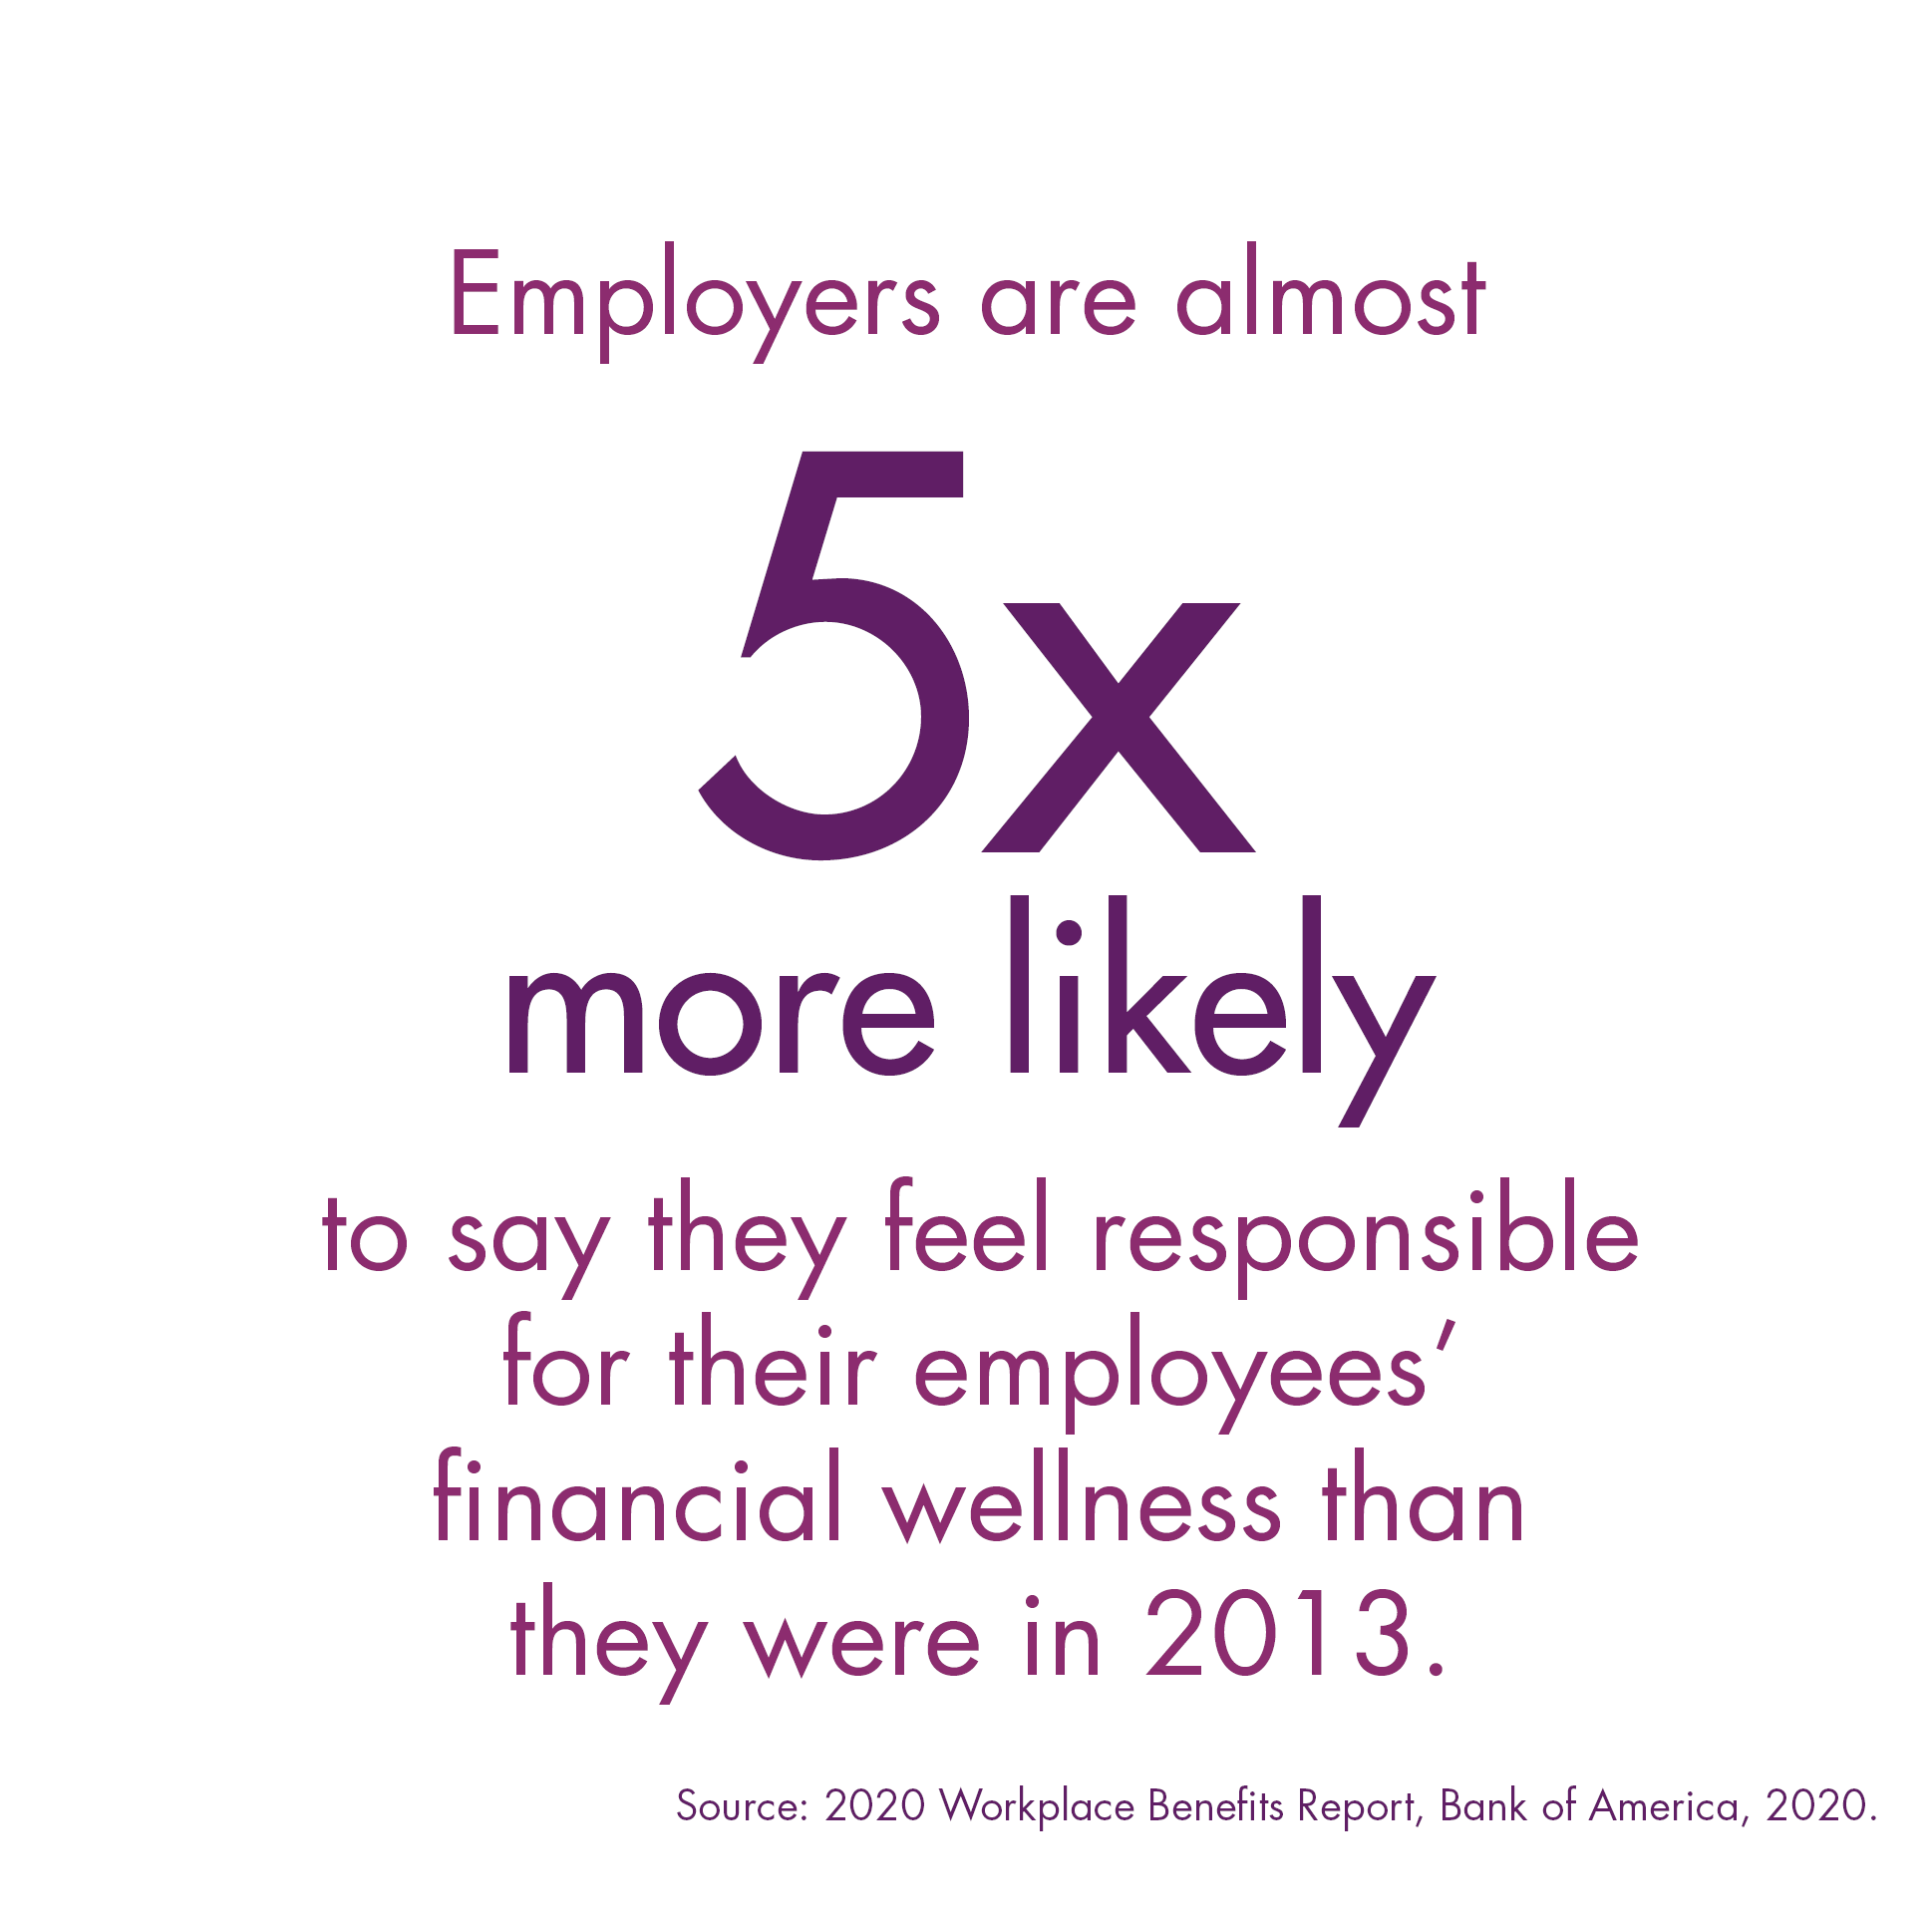 Employers are 5X more likely to feel liable